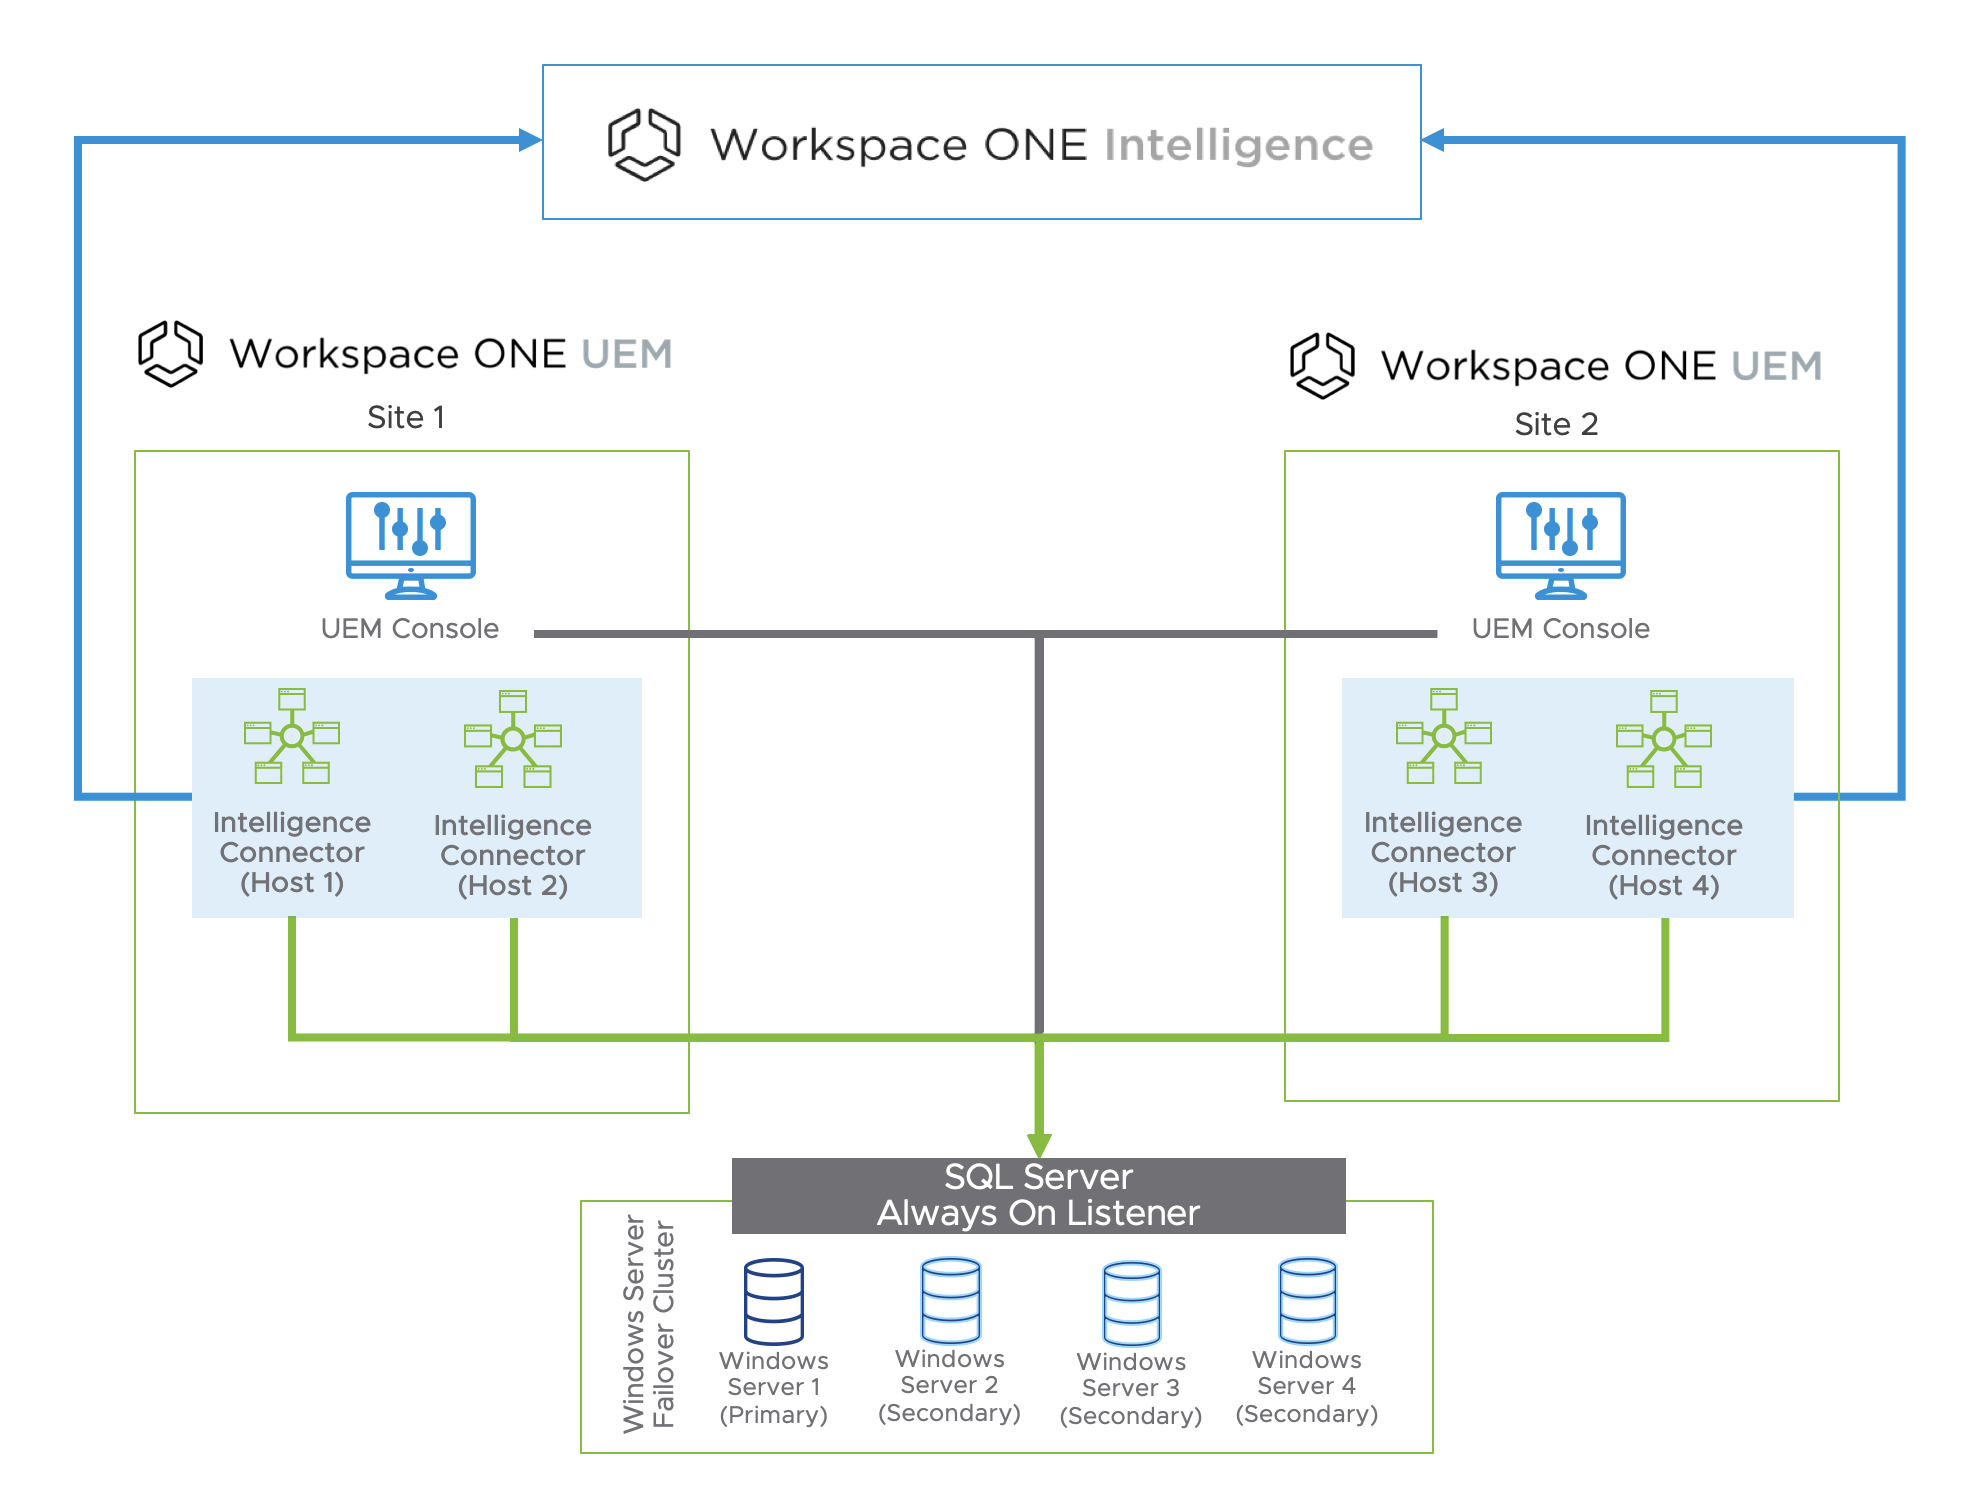 Multi-site Architecture for Workspace ONE Intelligence Connector